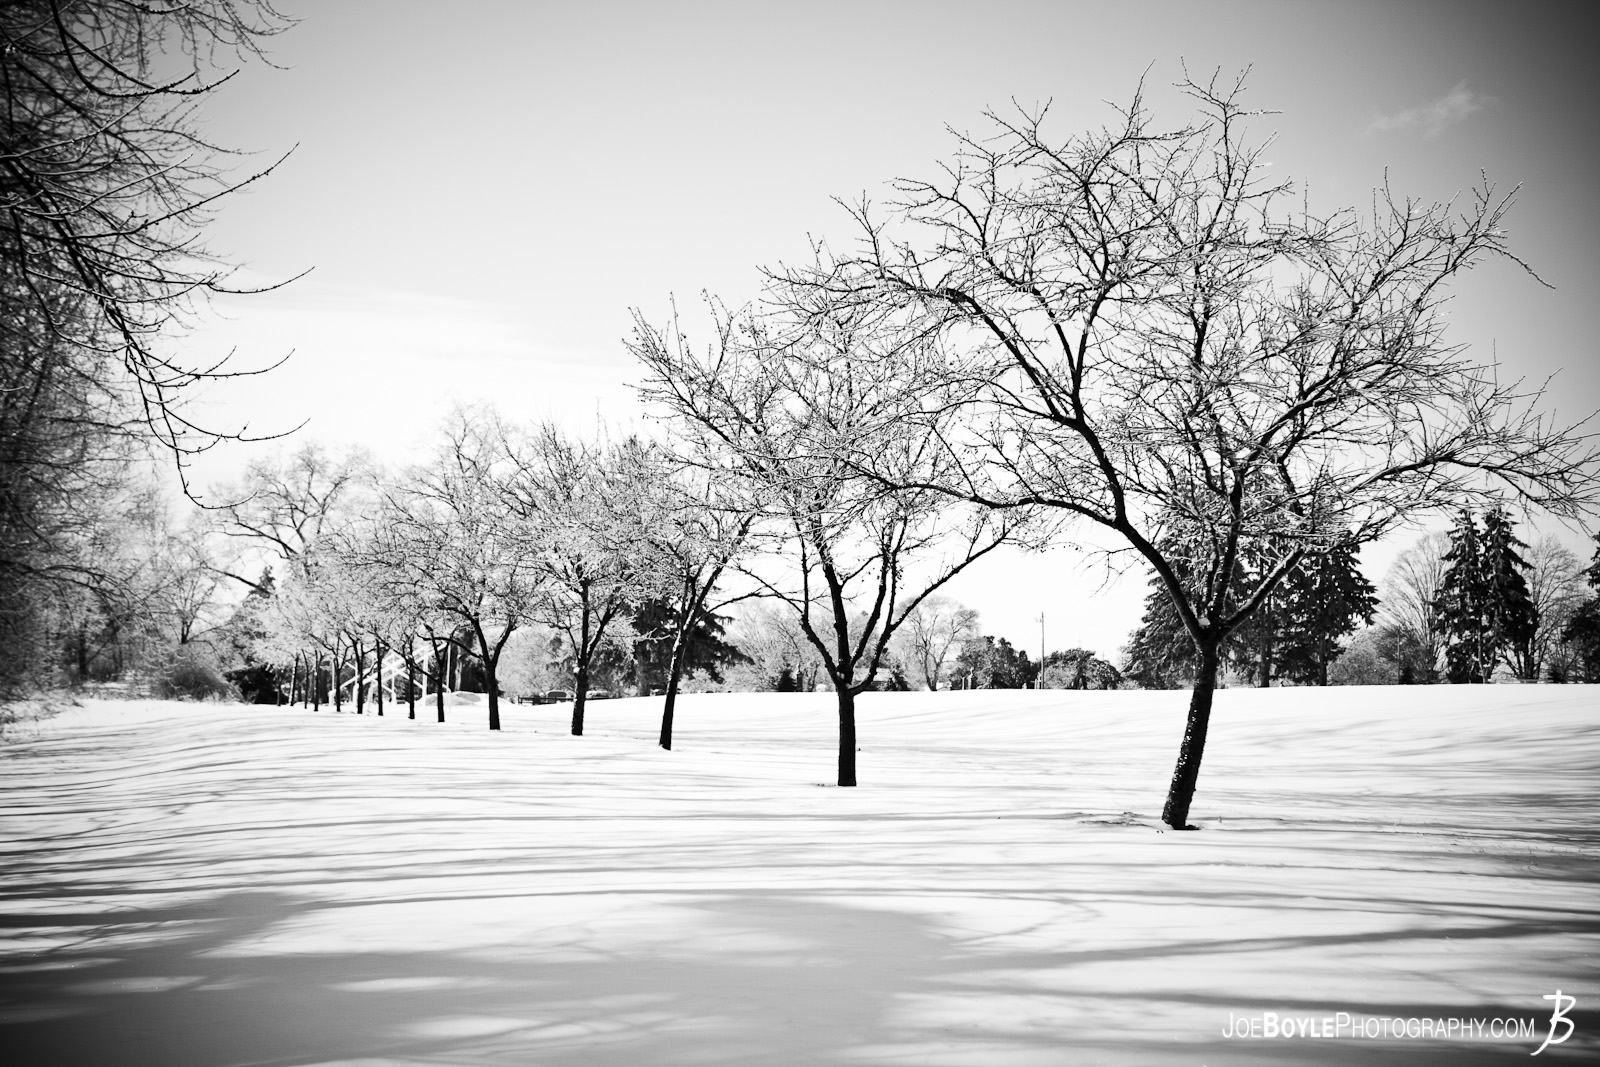 I captured this photo after a snow storm. The storm provided some great picture opportunities that I was able to capture the following day including this row of trees.